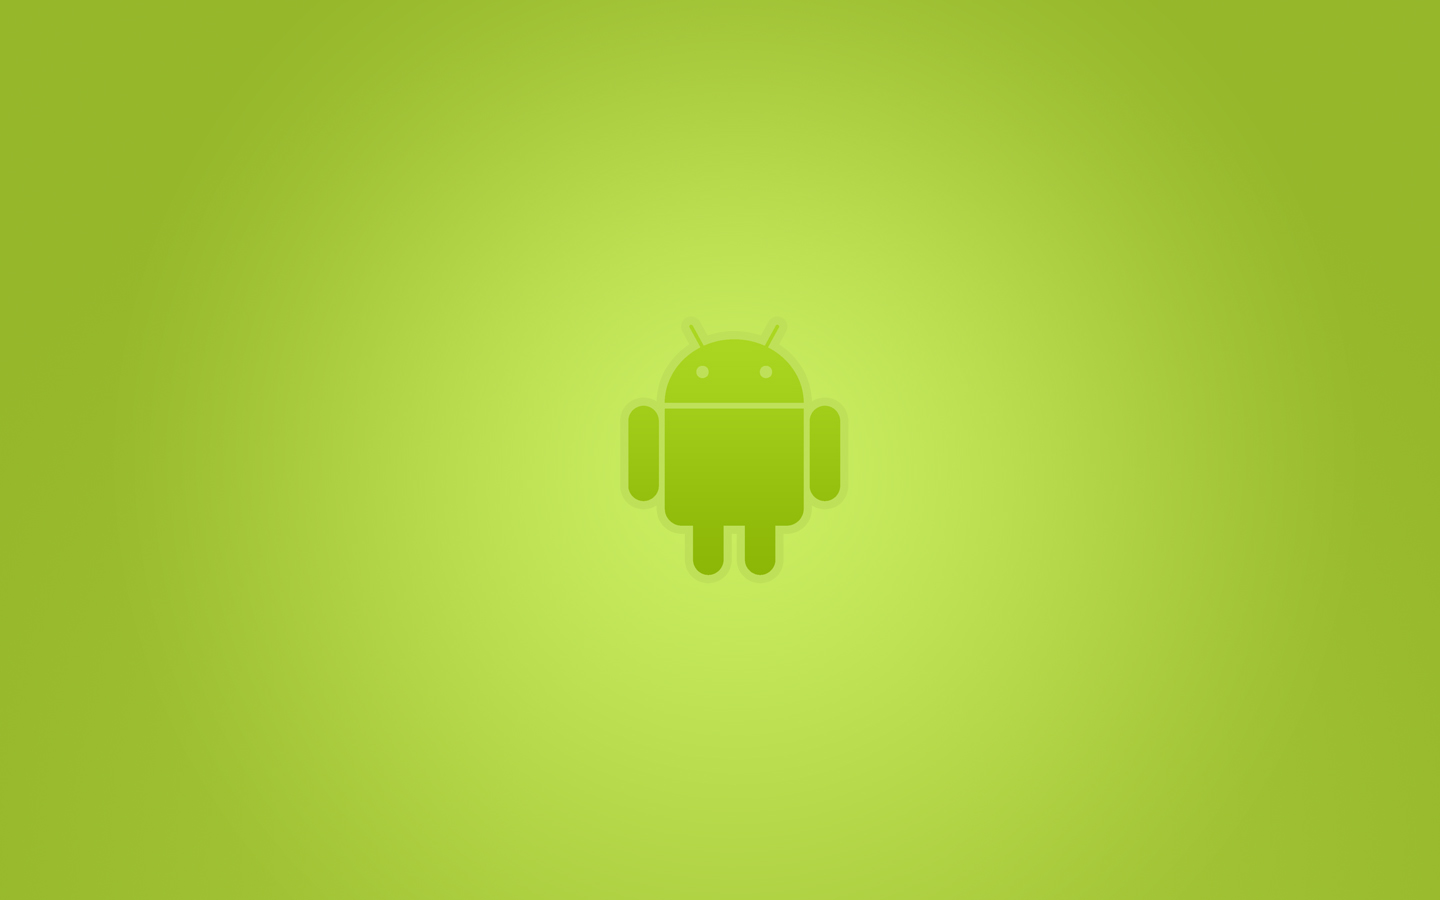 wallpapers for android   Android Tablet Wallpaper 1440x900